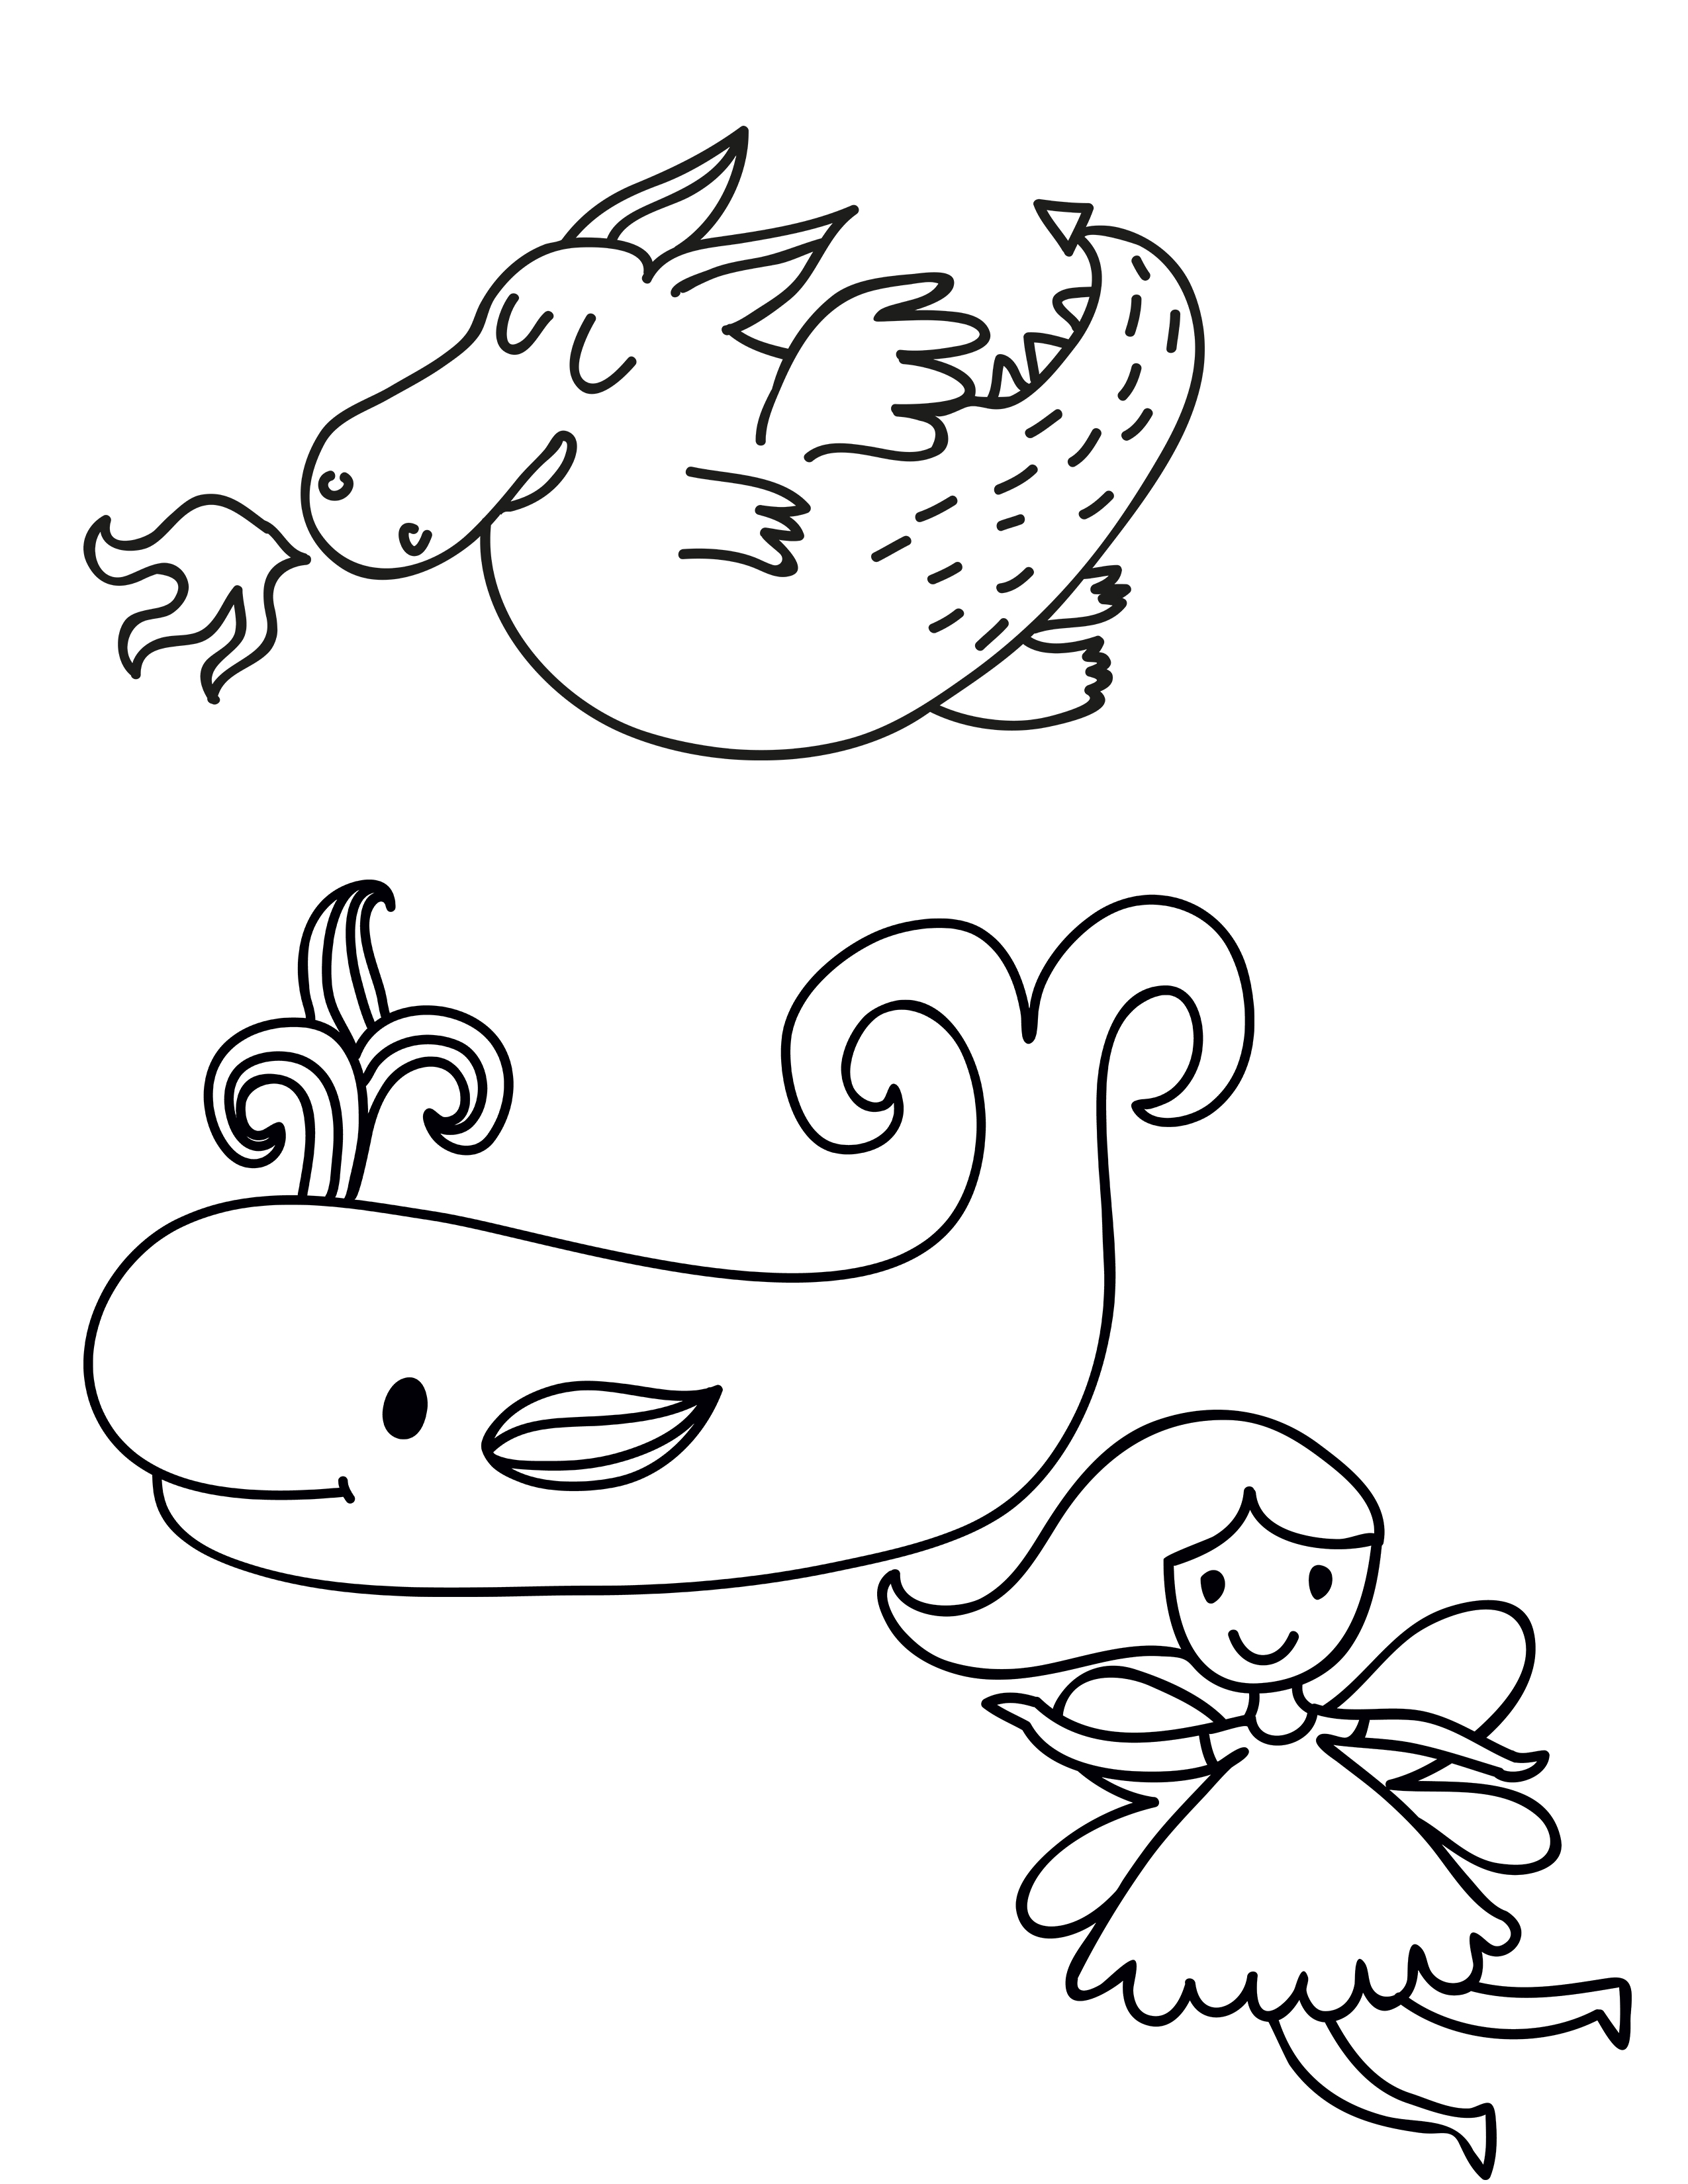 Free embroidery pattern fantasy creatures printable the free embroidery pattern fantasy creatures printable dt1010fo